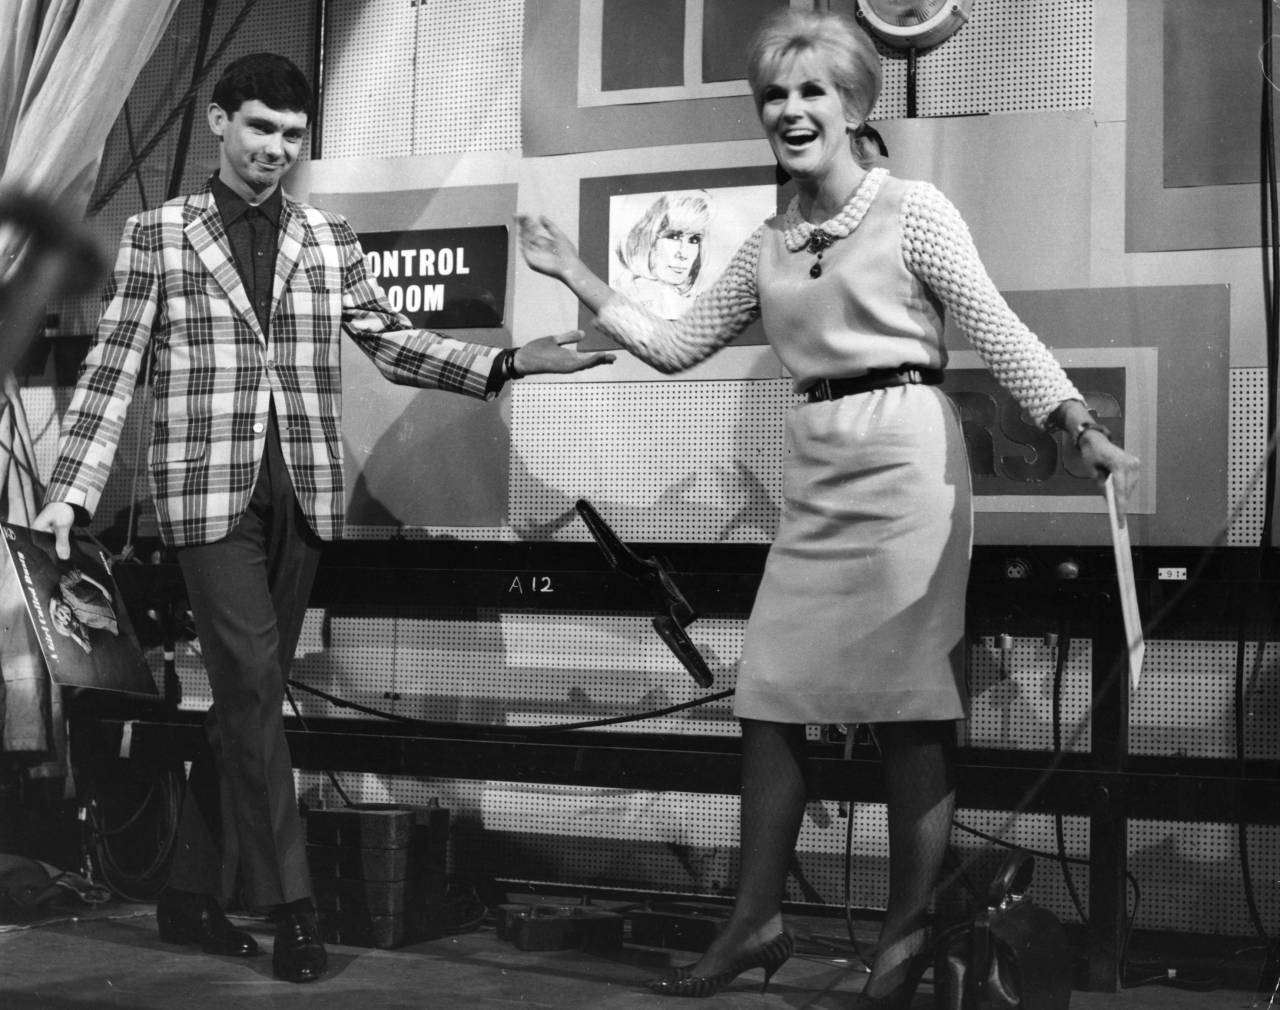 November 1964: Pop singers Gene Pitney and Dusty Springfield (1939 - 1999), holding copies of each others records, share a joke on the set of British television music show 'Ready Steady Go'. (Photo by Chris Ware/Keystone Features/Getty Images)